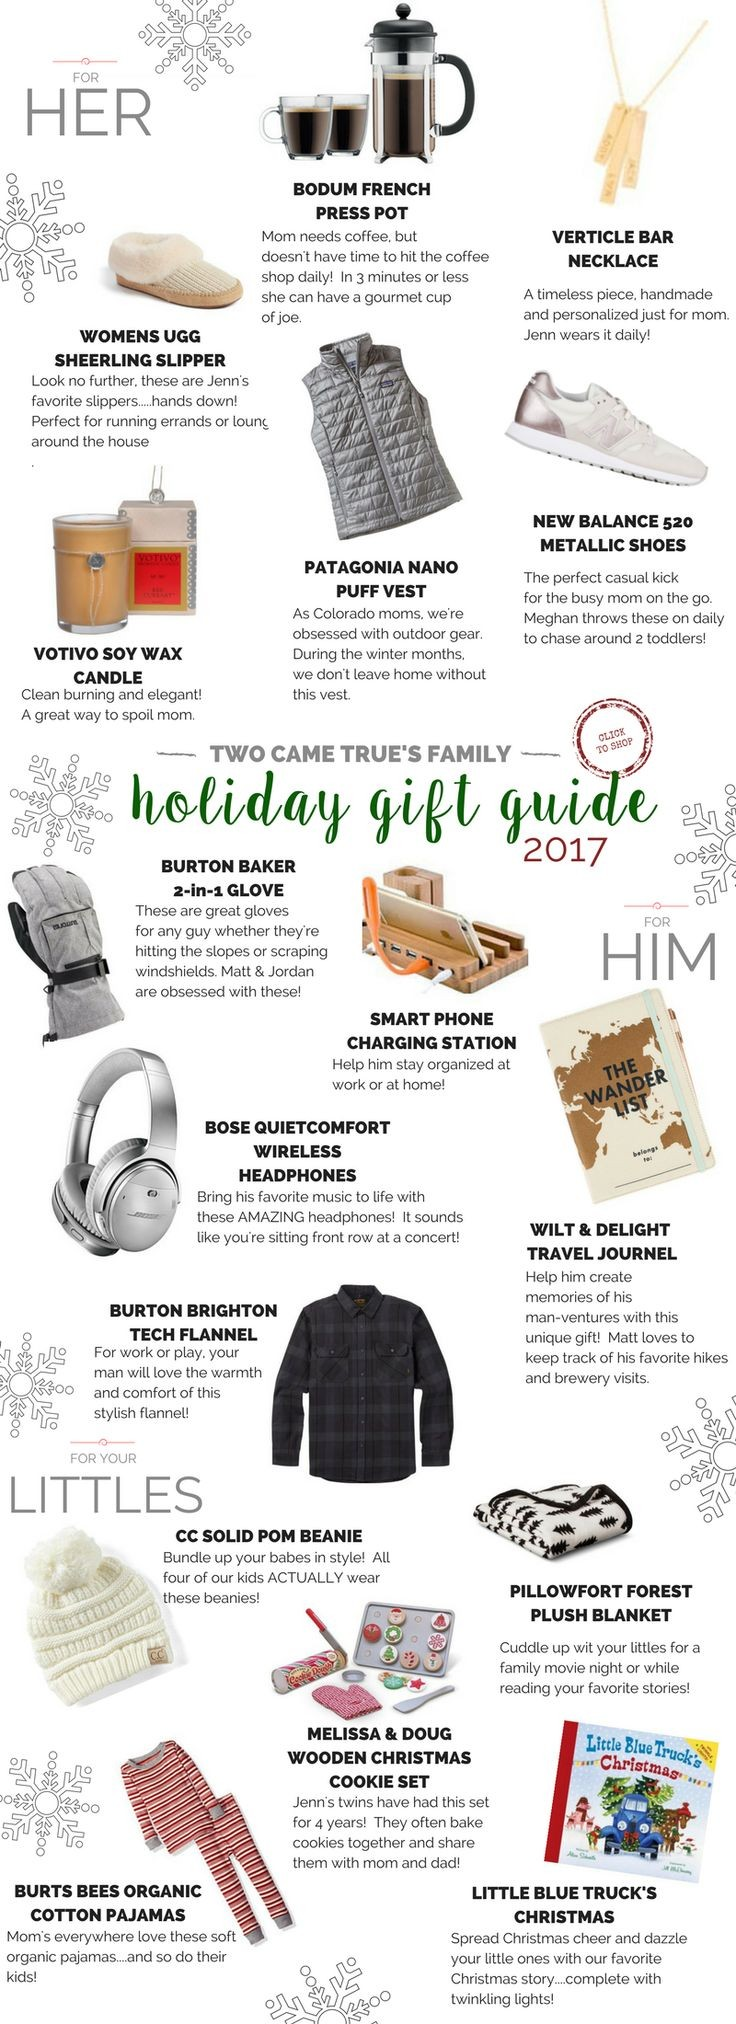 Our 2017 Family Holiday Gift Guide